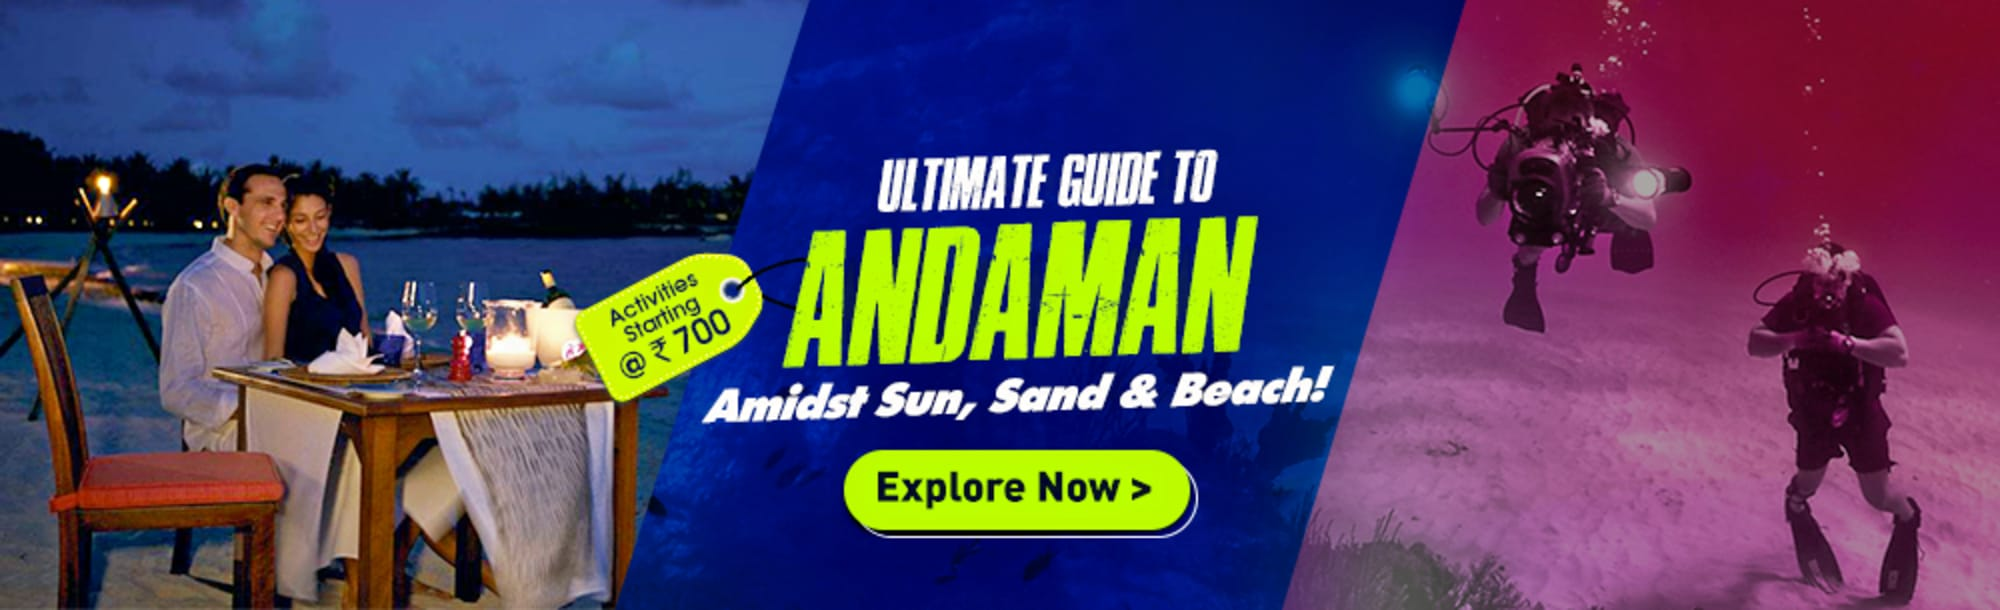 1513083501_andaman(1000x305)hp_final.png